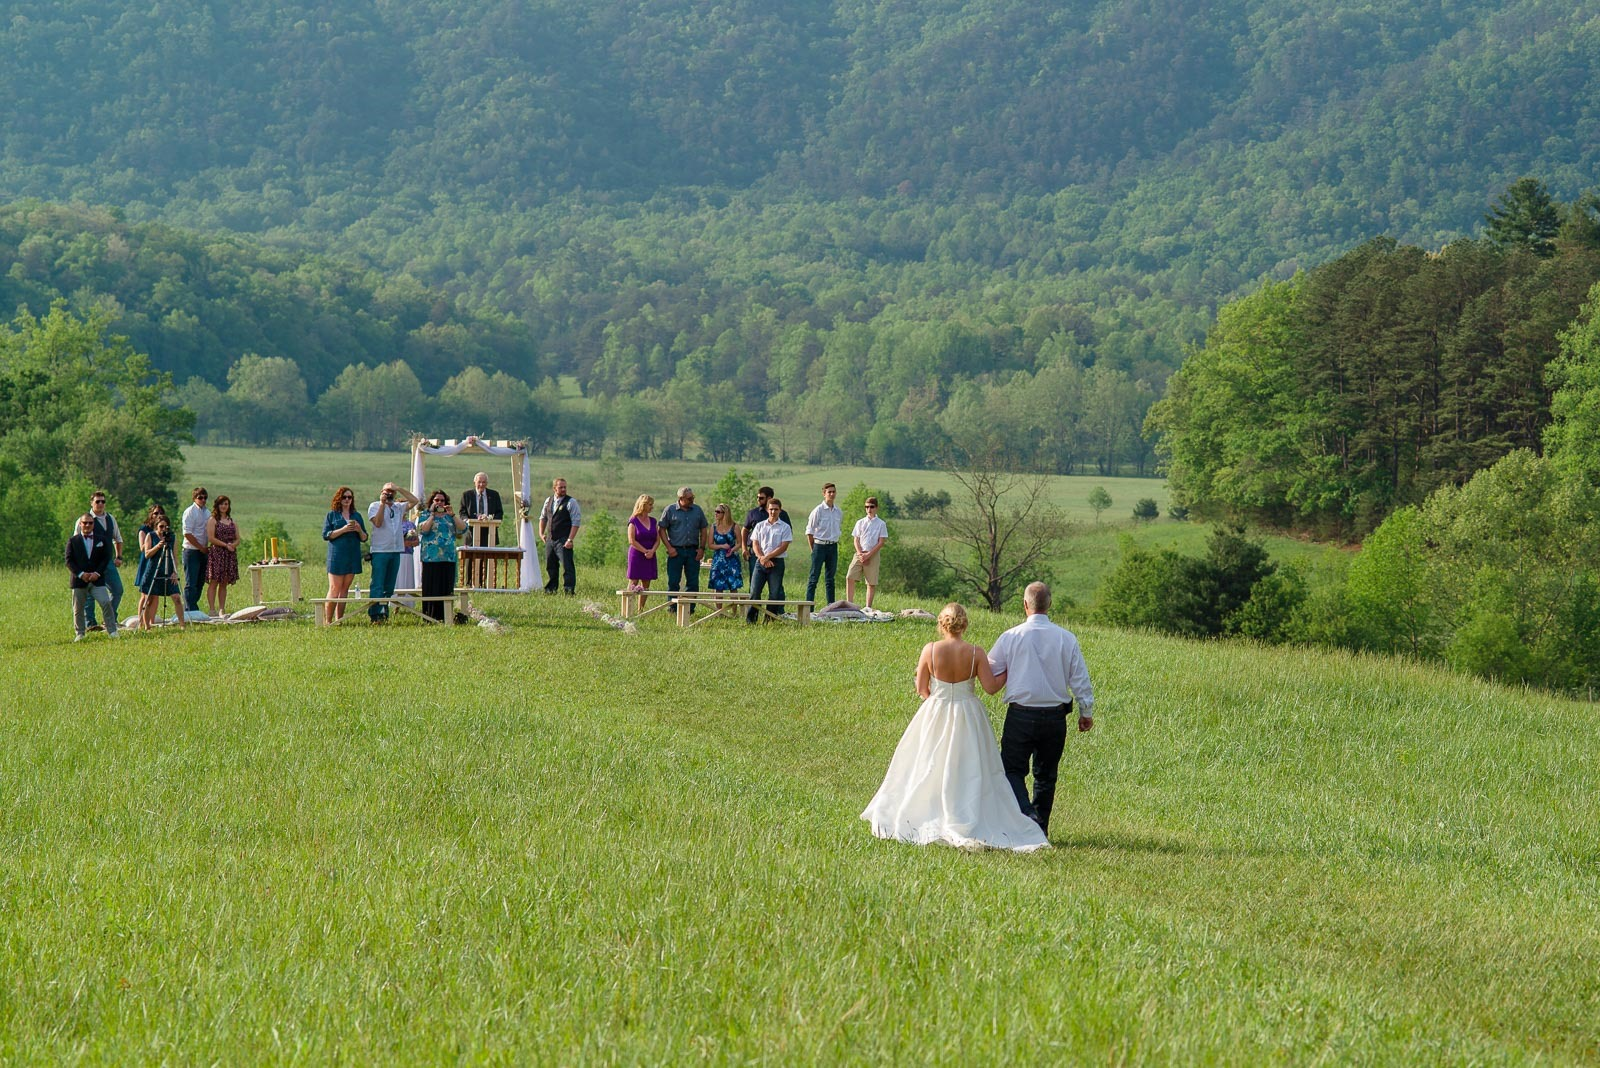 cades cove wedding-8826